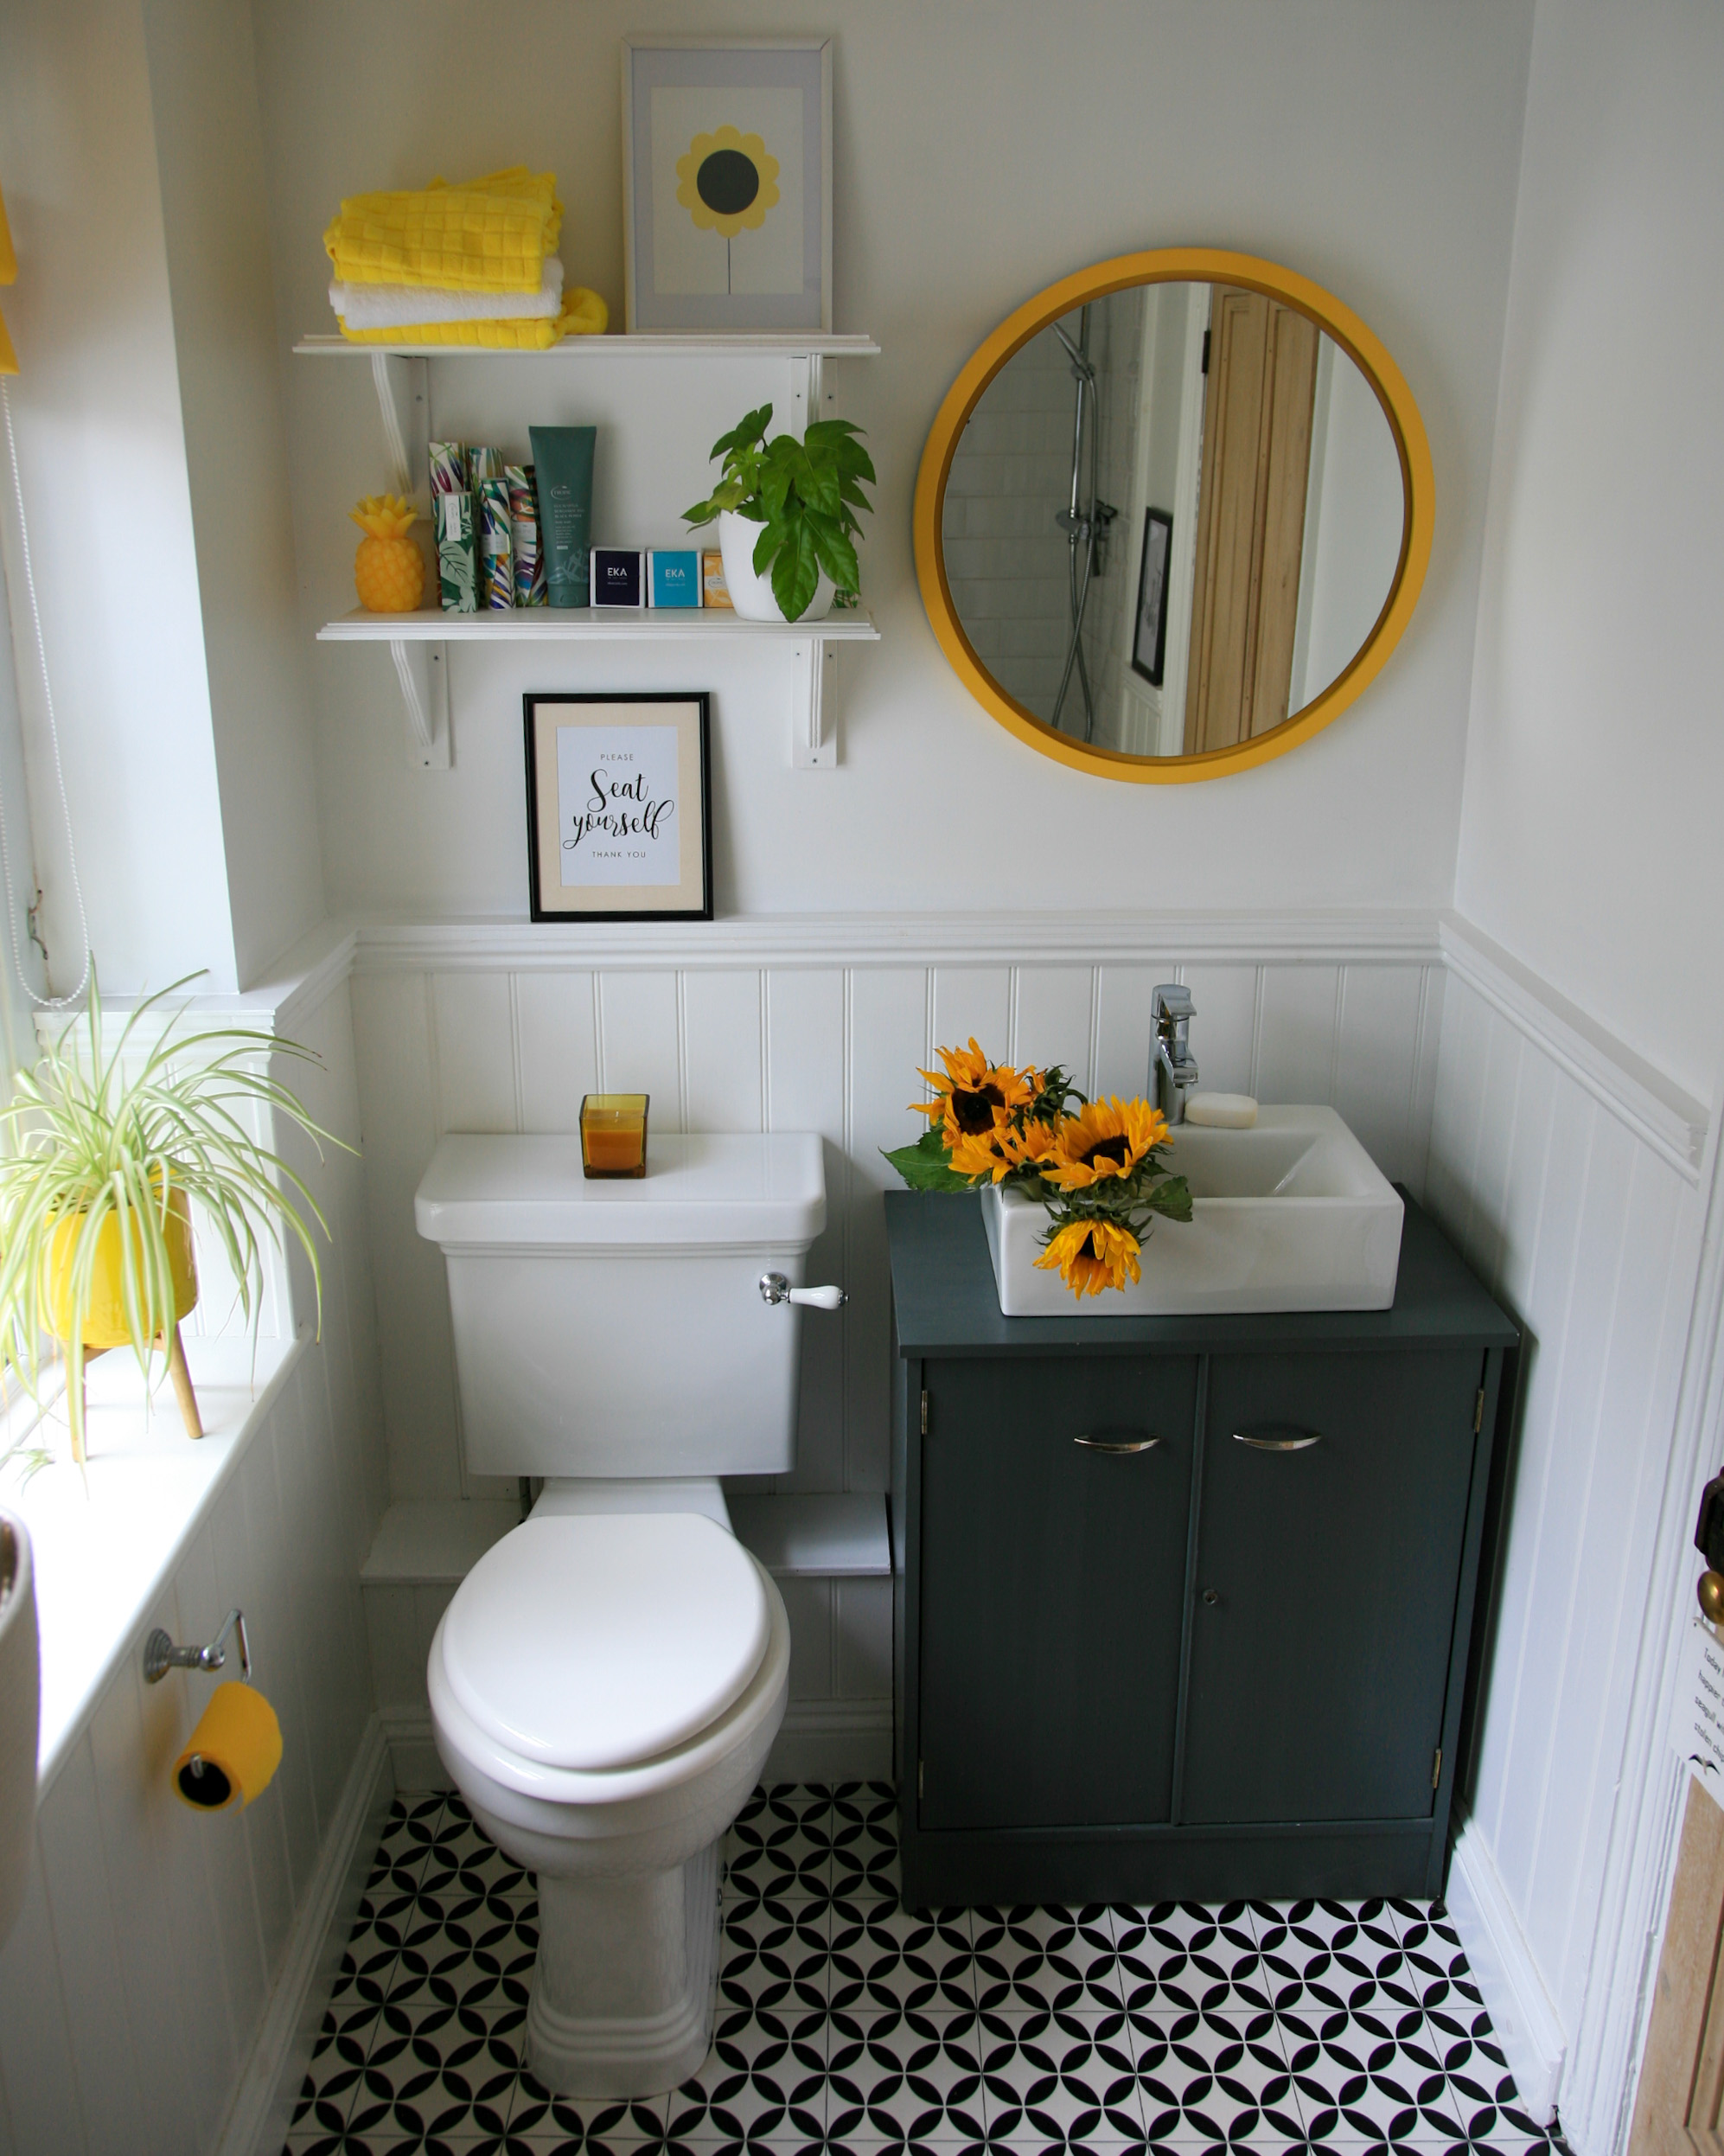 Image shows a sink unit painted in Farrow & Ball Downpipe with sunflowers in the basin. There is a yellow round mirror above the sink and two shelves showing other yellow accessories. Next to the toilet on the window sill there is a house plant in a yellow plant pot.